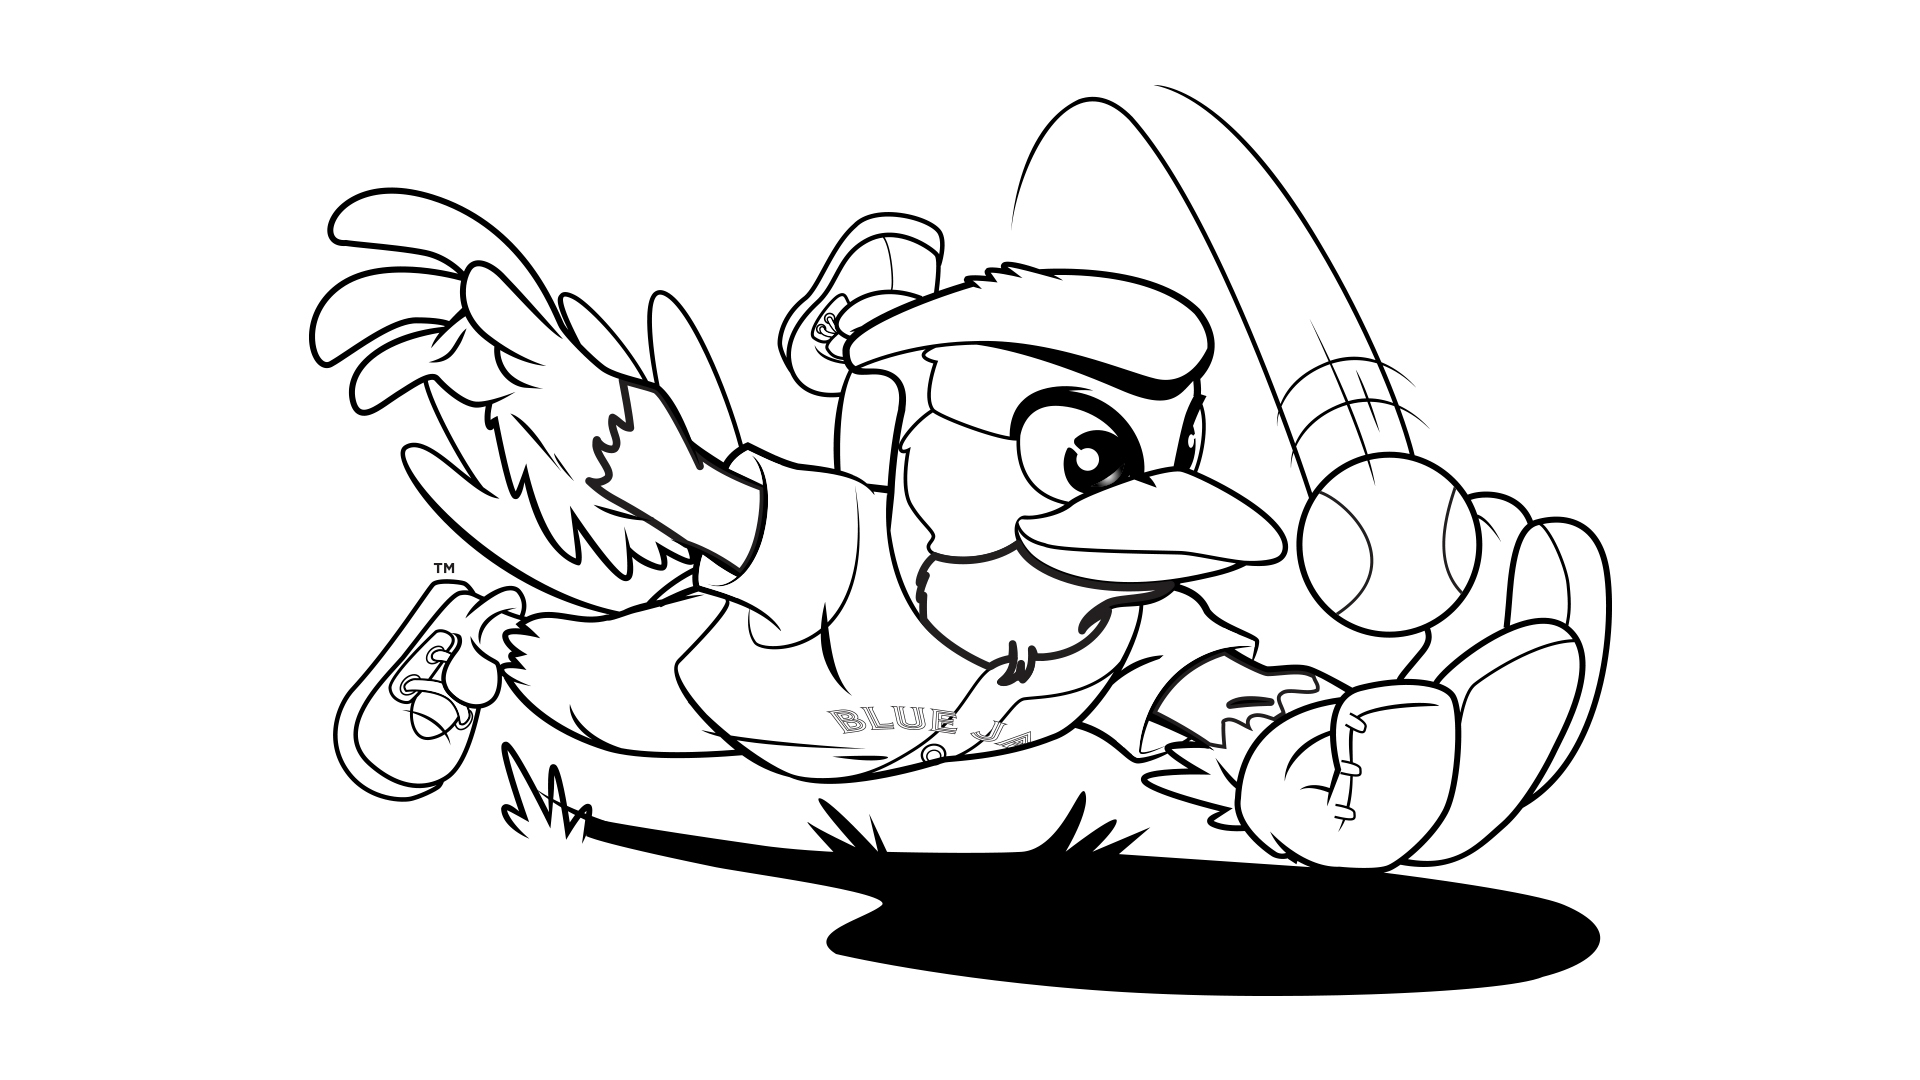 toronto blue jays coloring pages toronto blue jays coloring pages free coloring library pages toronto jays blue coloring